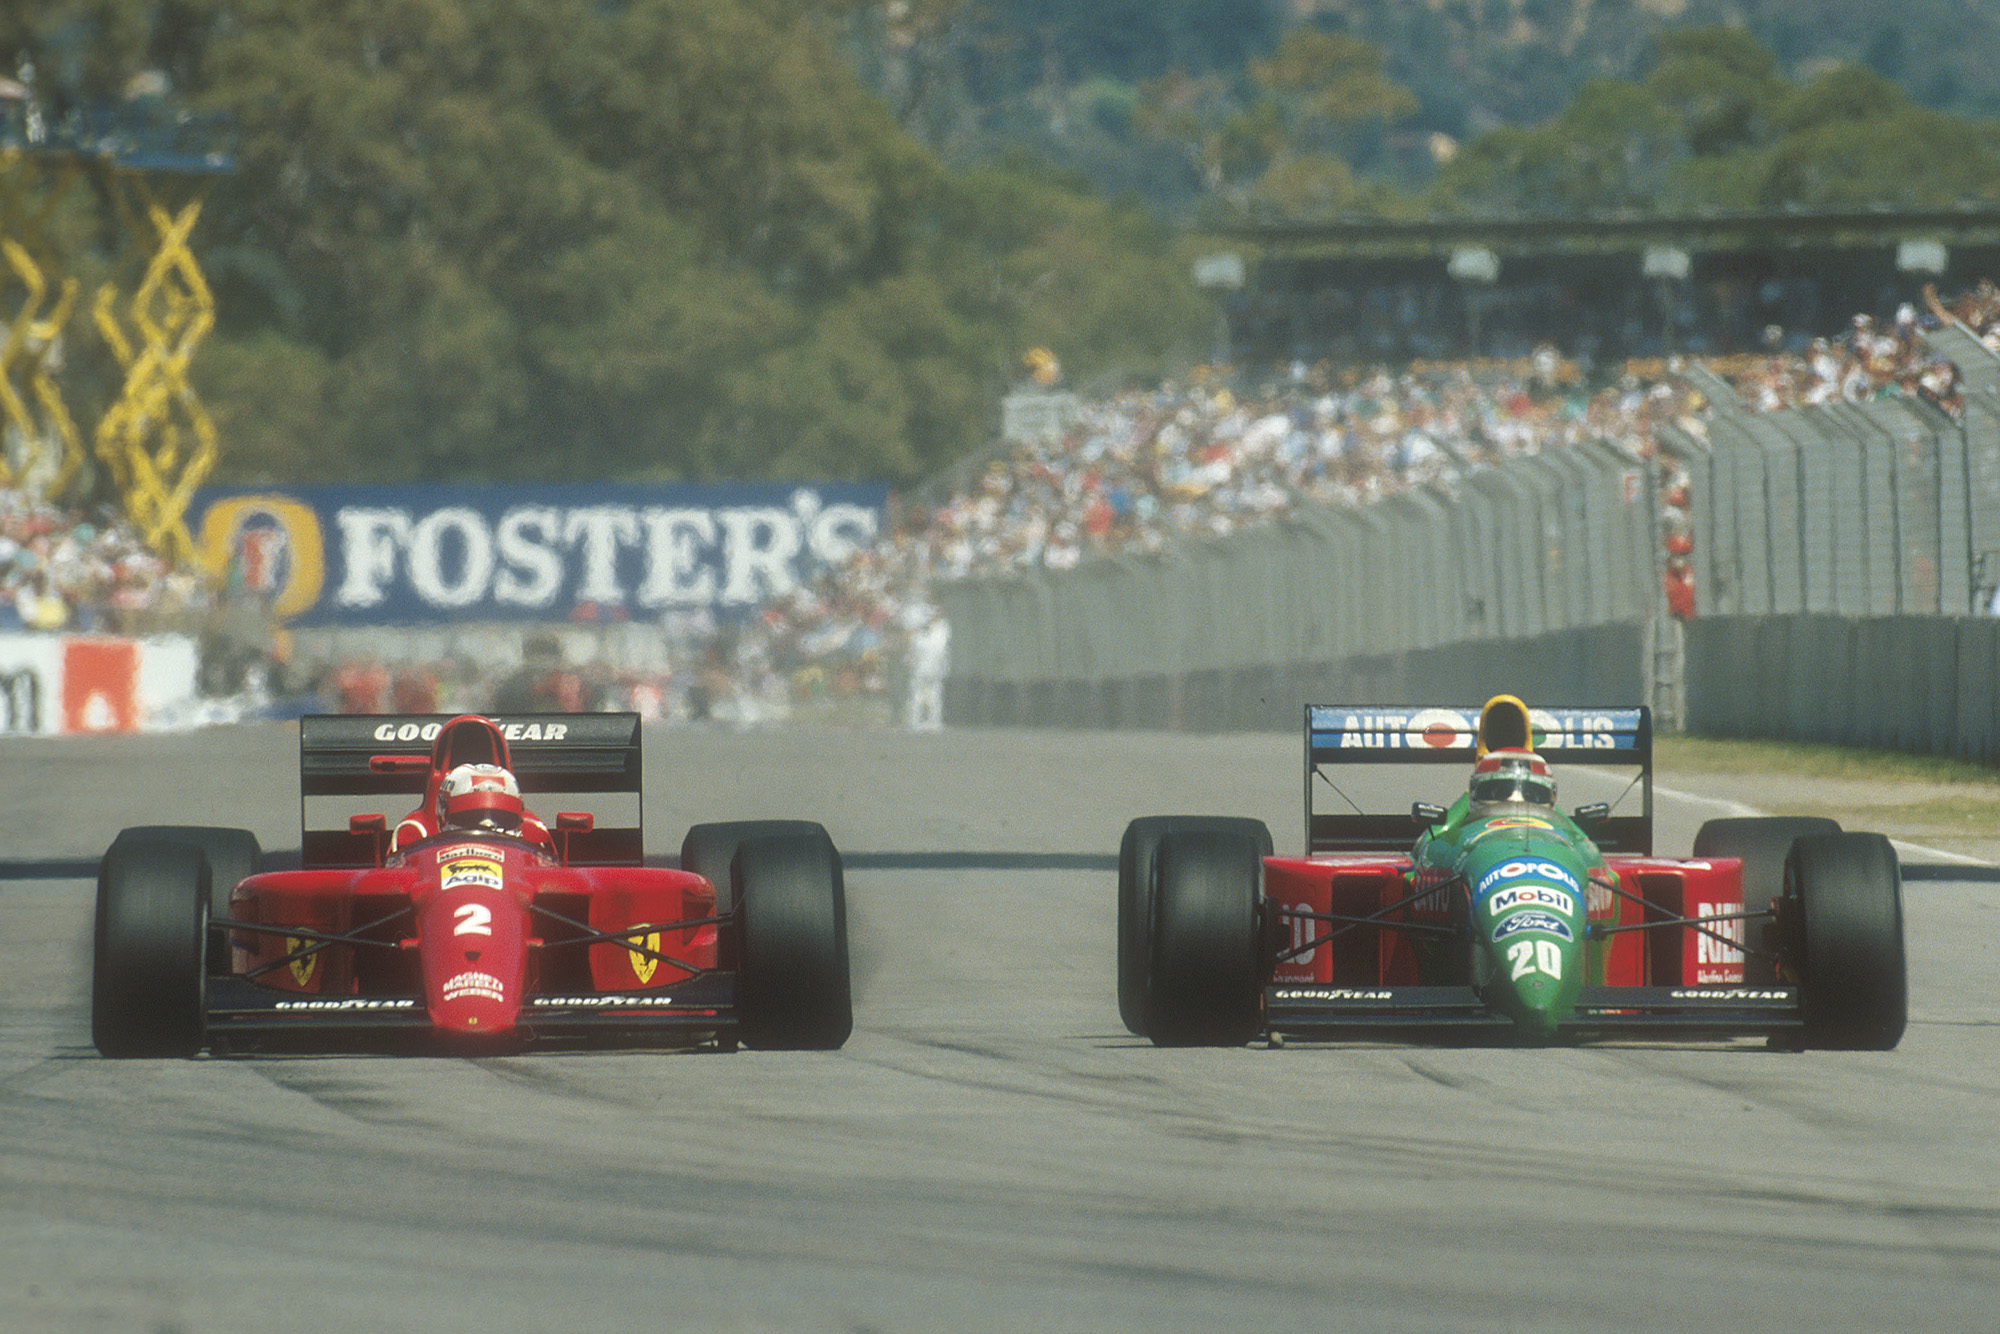 Nigel Mansell and Nelson Piquet battling at Adelaide during the 1990 Australian Grand Prix